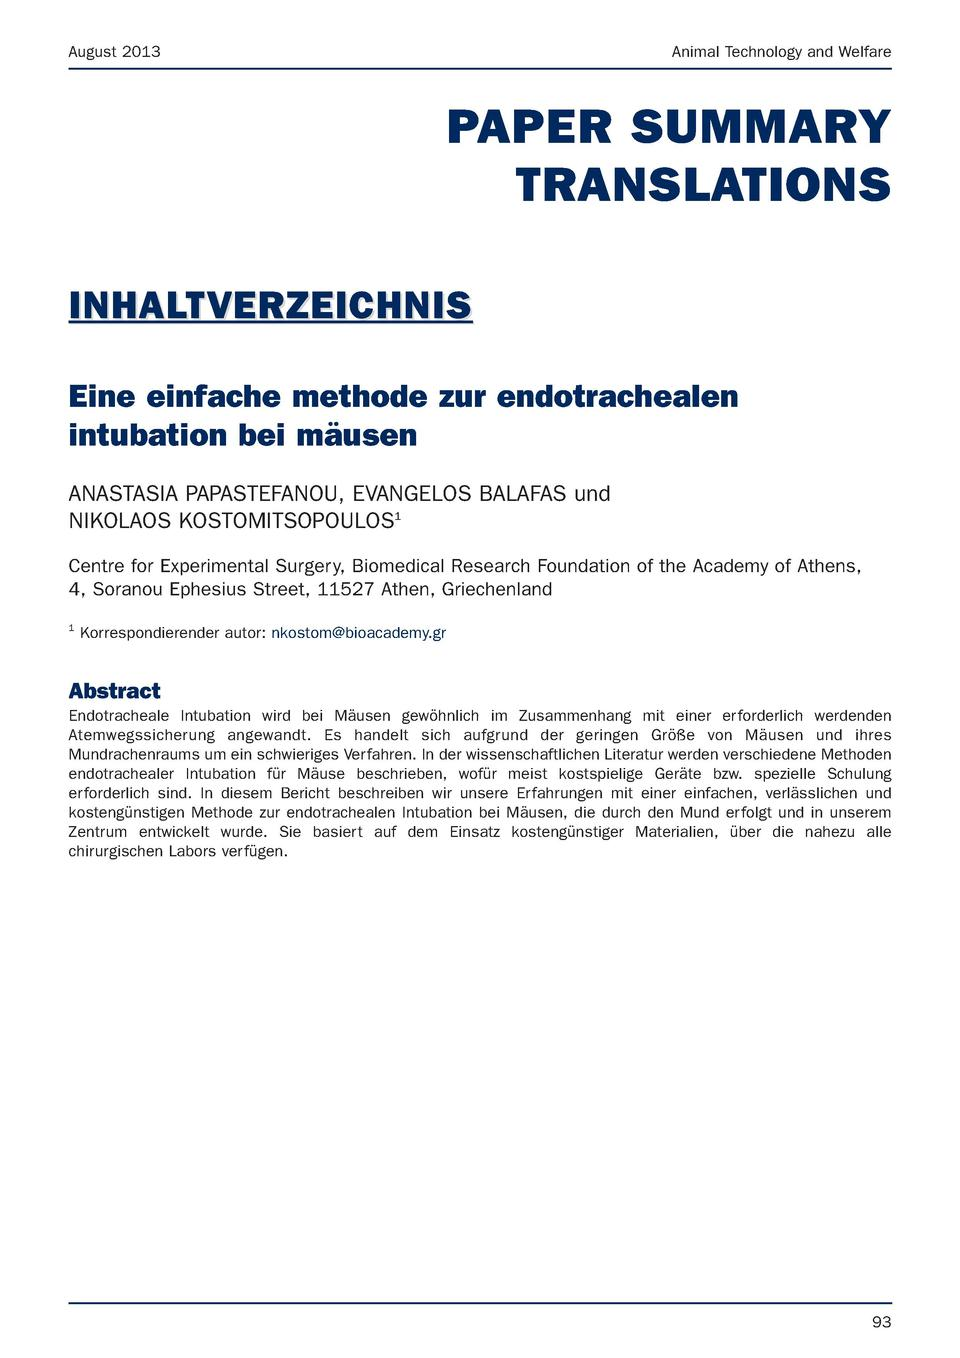 August 2013  Animal Technology and Welfare  PAPER SUMMARY TRANSLATIONS INHALTVERZEICHNIS Eine einfache methode zur endotra...